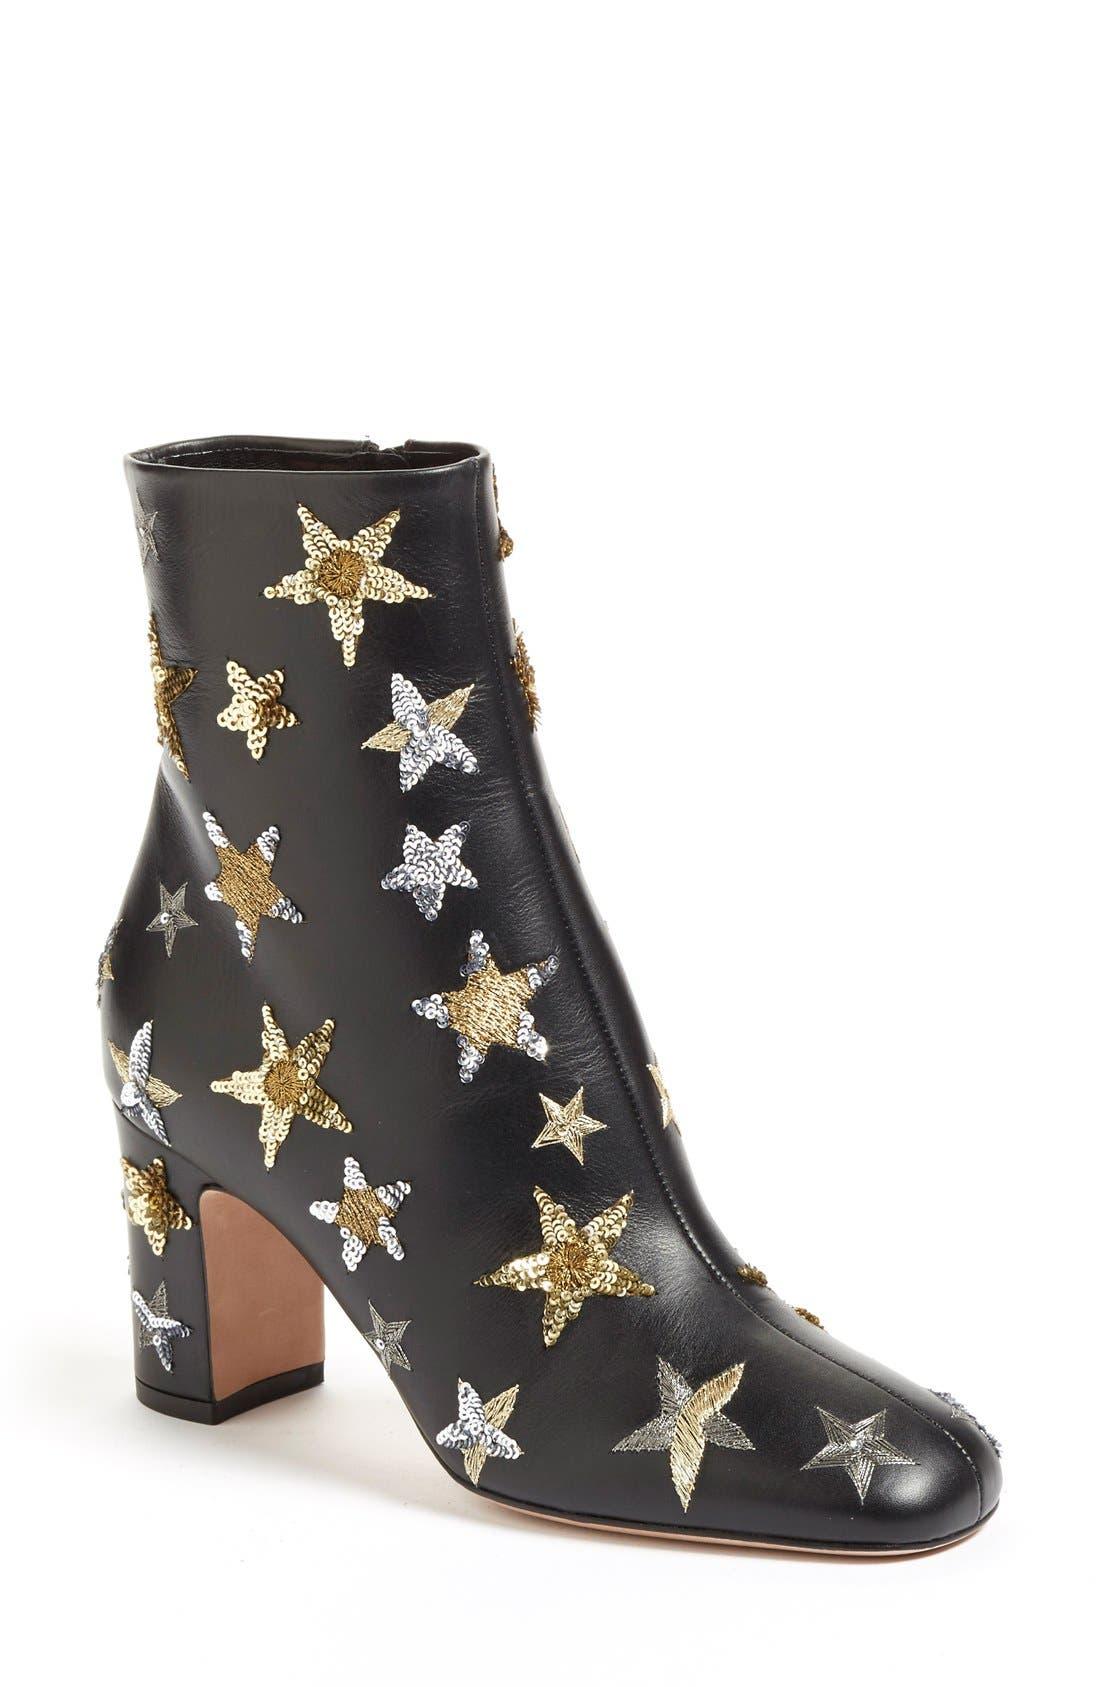 VALENTINO 'Star Studded' Bootie, Main, color, 002